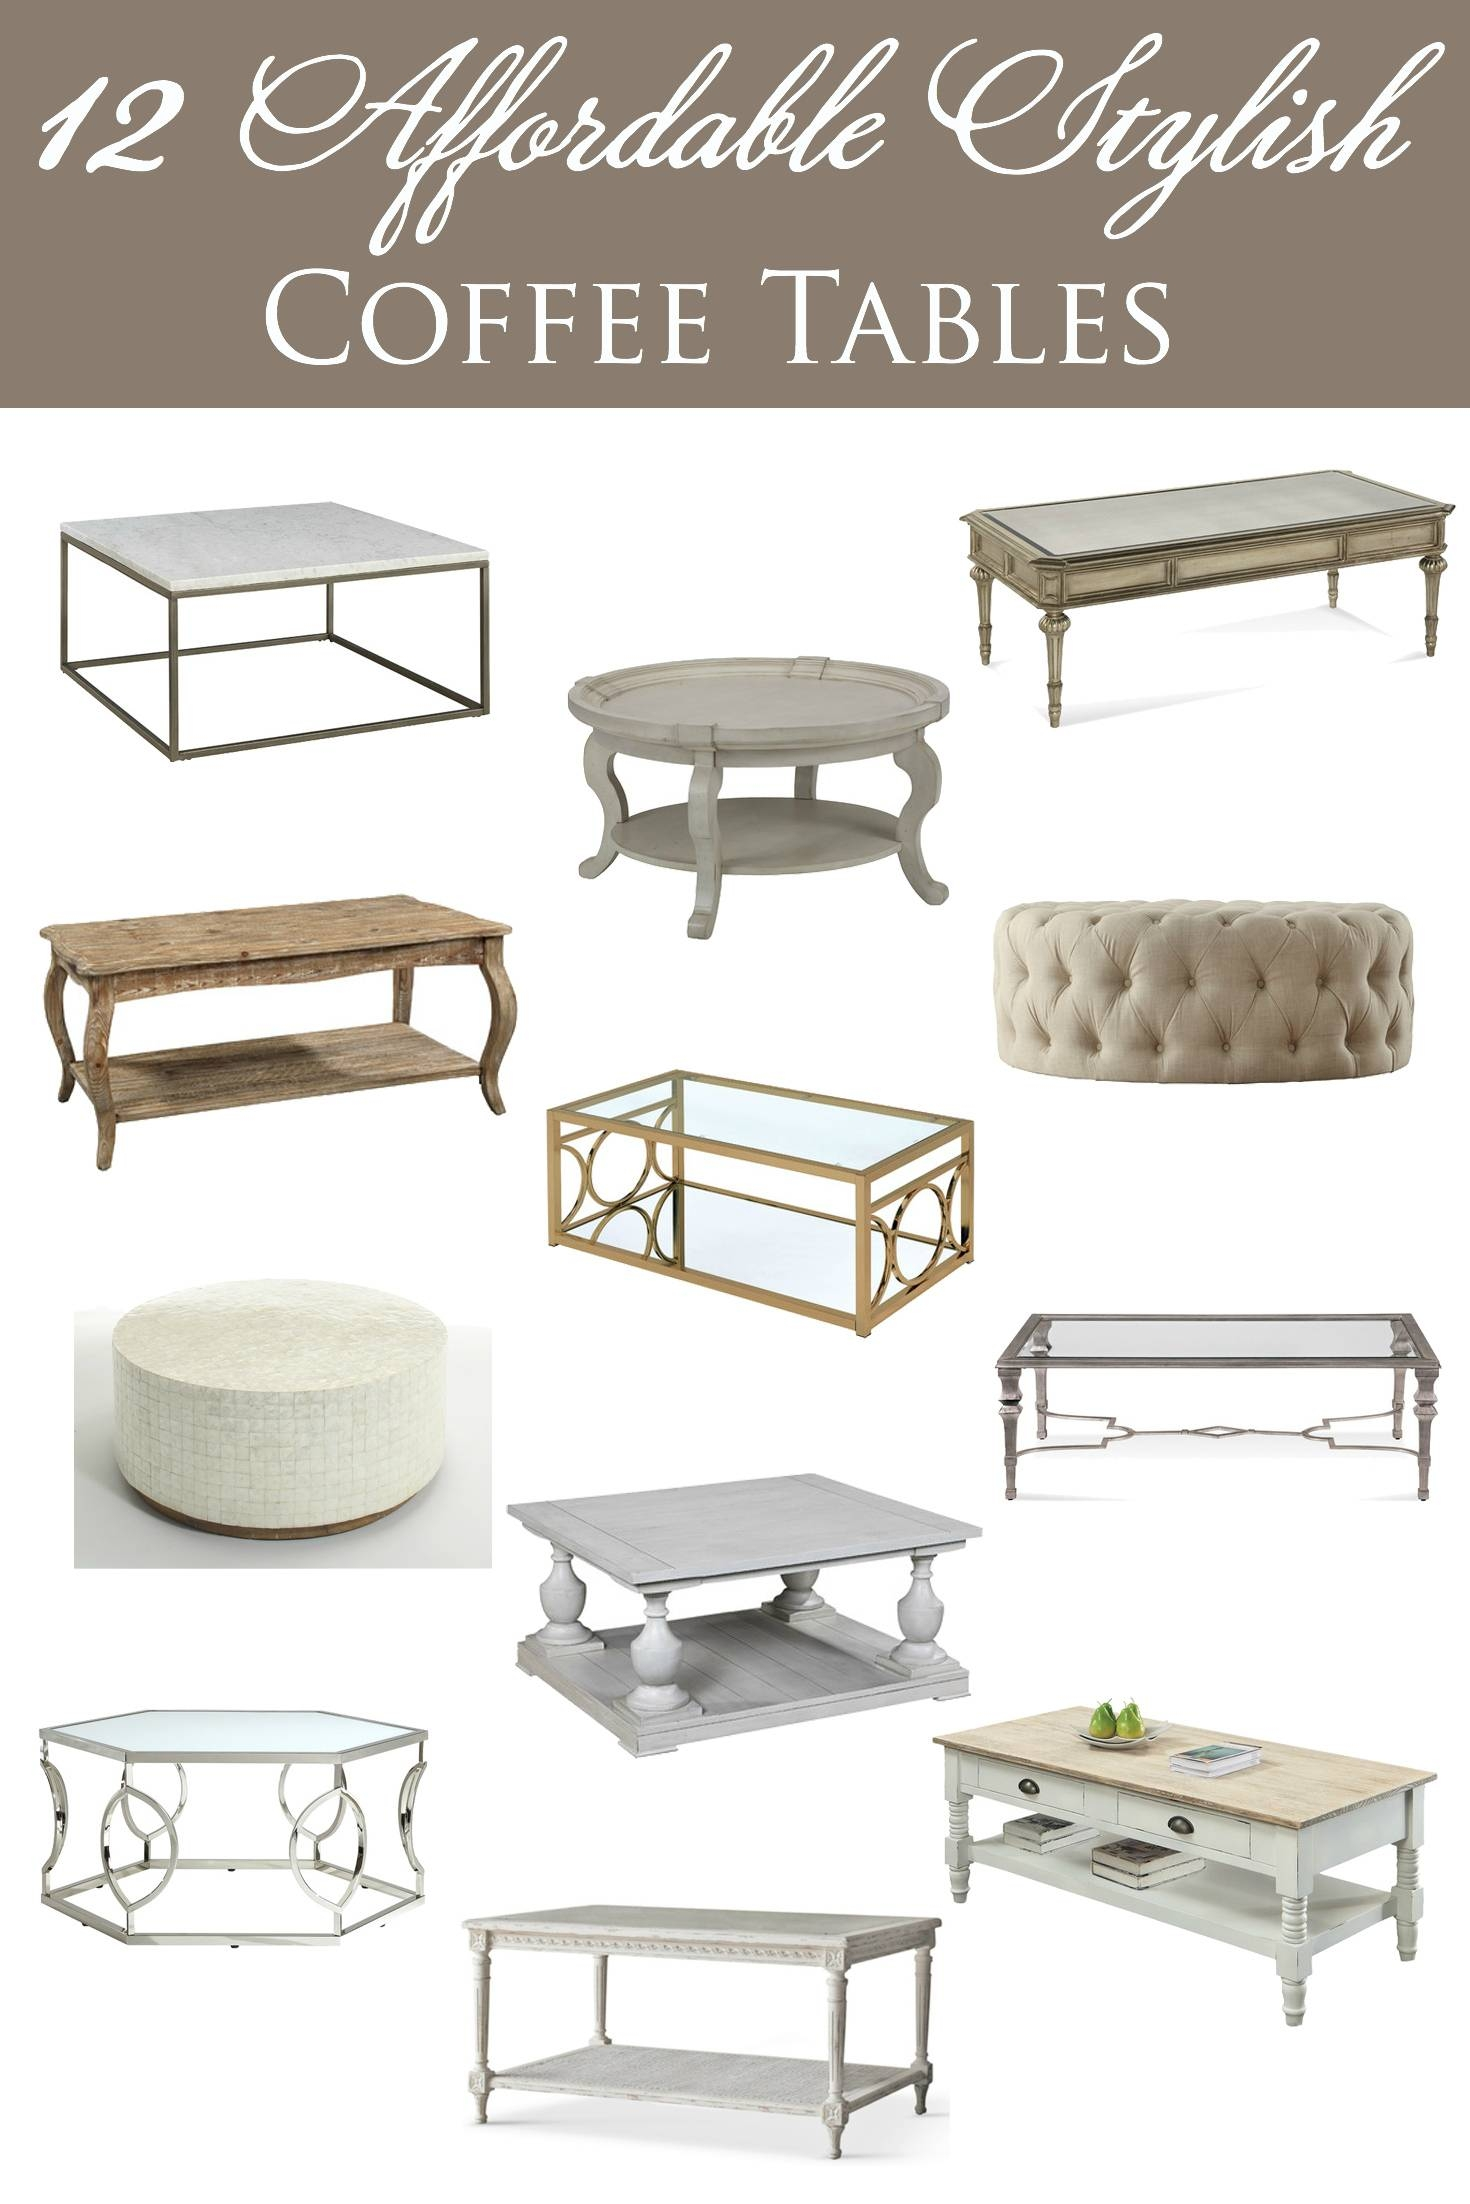 12 Affordable Stylish Coffee Tables intended for Stylish Coffee Tables (Image 1 of 30)